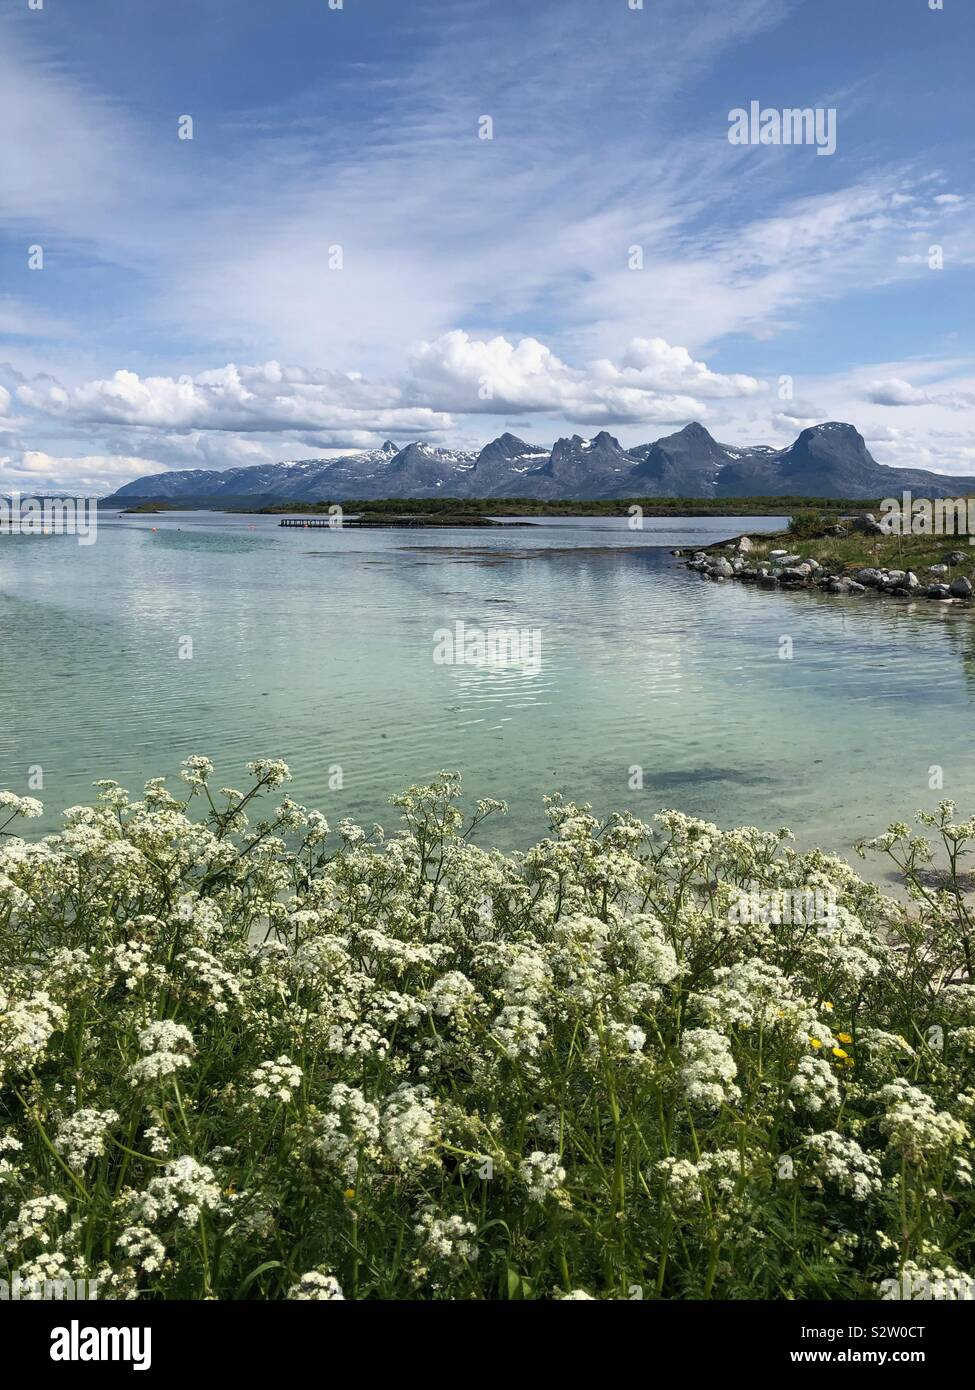 The seven sisters mountain range at Heroy Island, Norway. Stock Photo